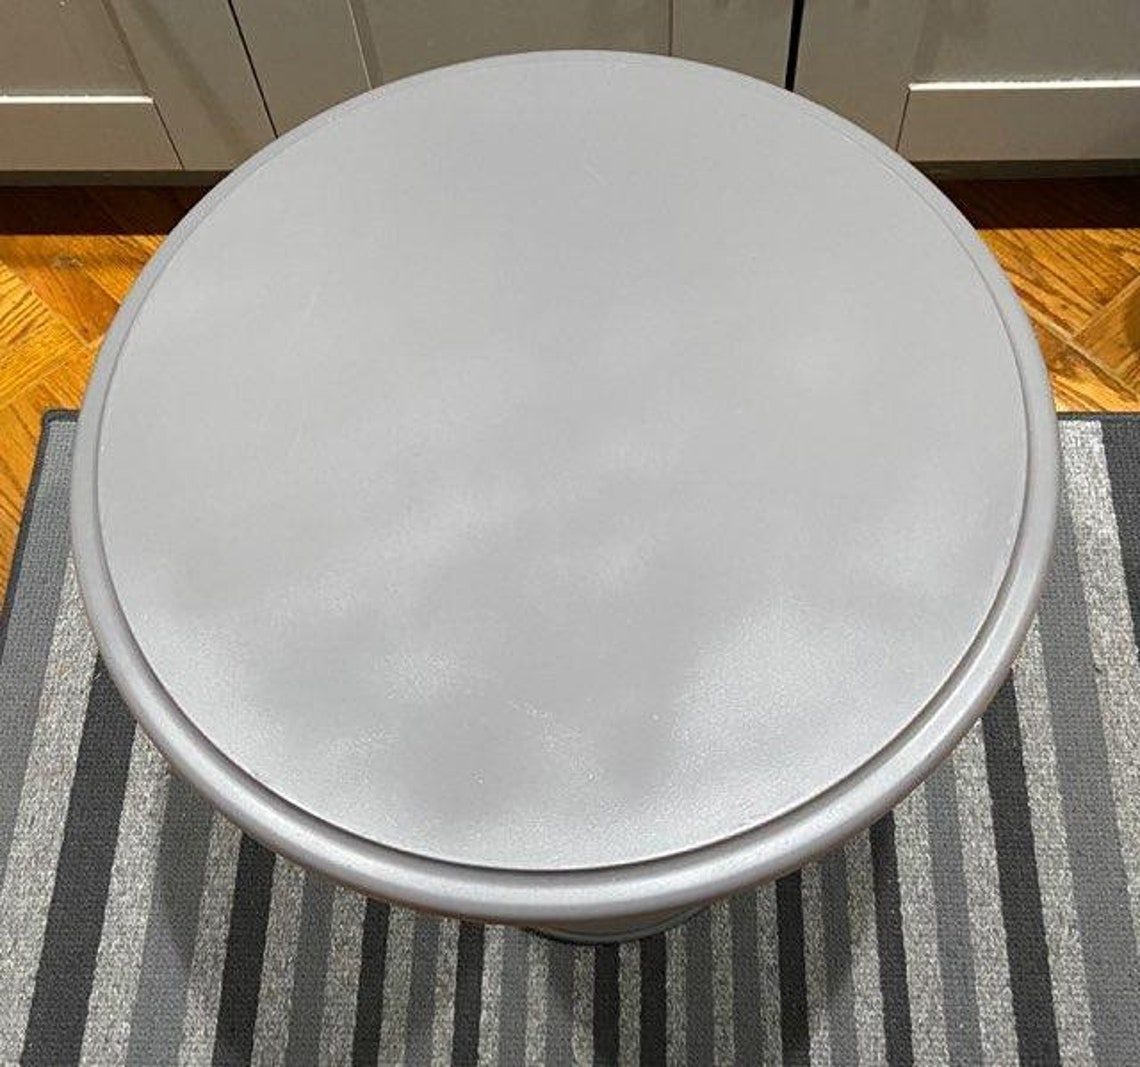 This Timeless Marble Round TableTop with Very Ornate Cherub Base can be used as a side table or night stand.